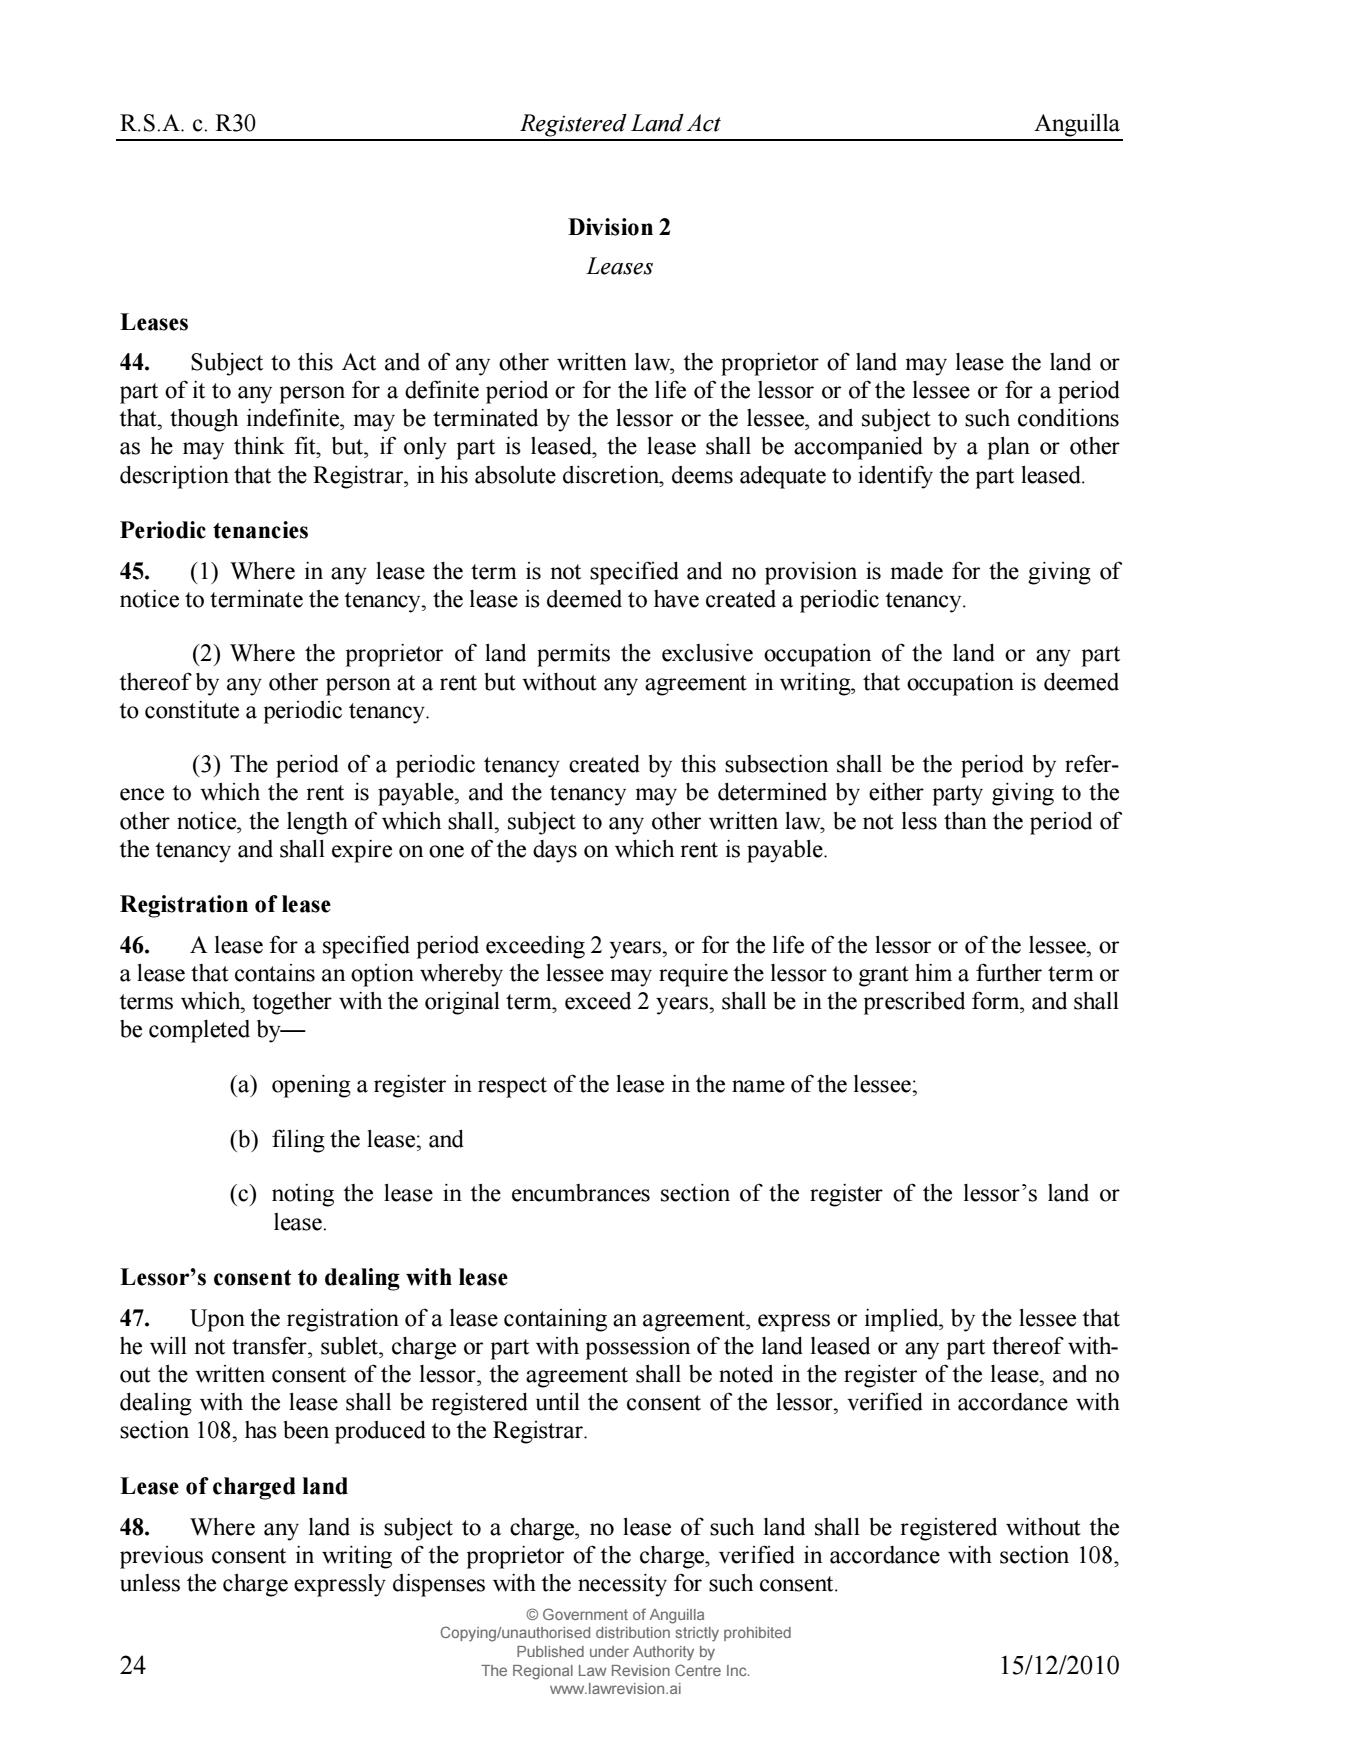 Index of /laws/R030-00-Registered Land Act/docs